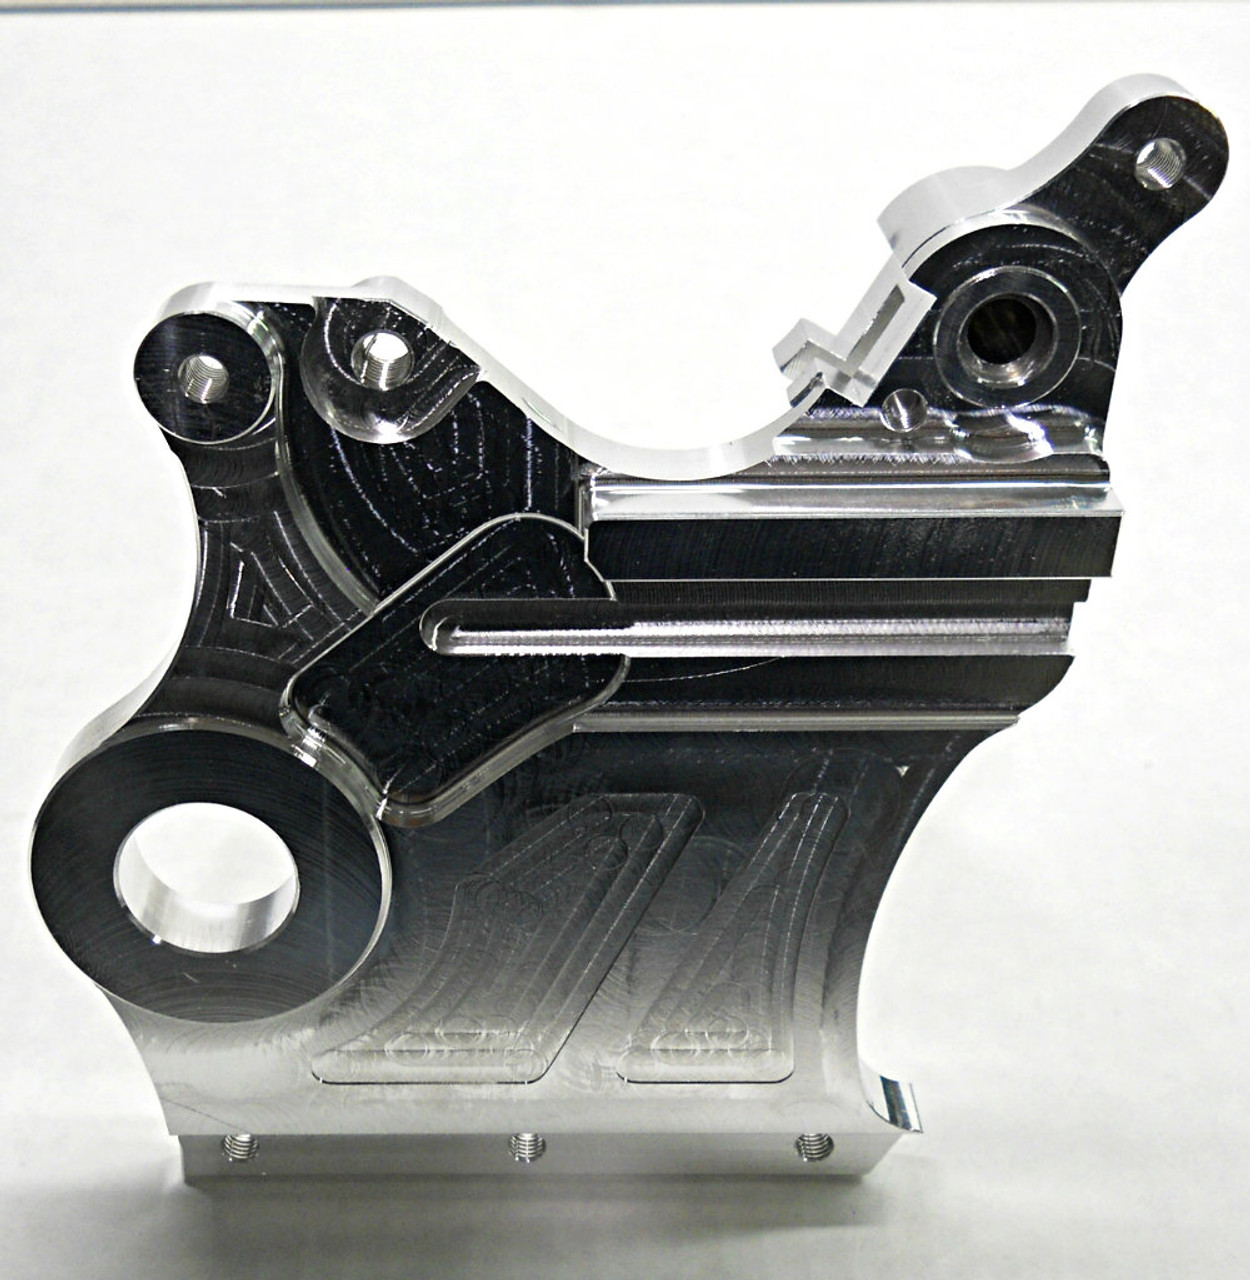 RFM-119 Carrier Mount Close up for 2009-2012 KTM 950 AND 990 ADVENTURE (Outside View)